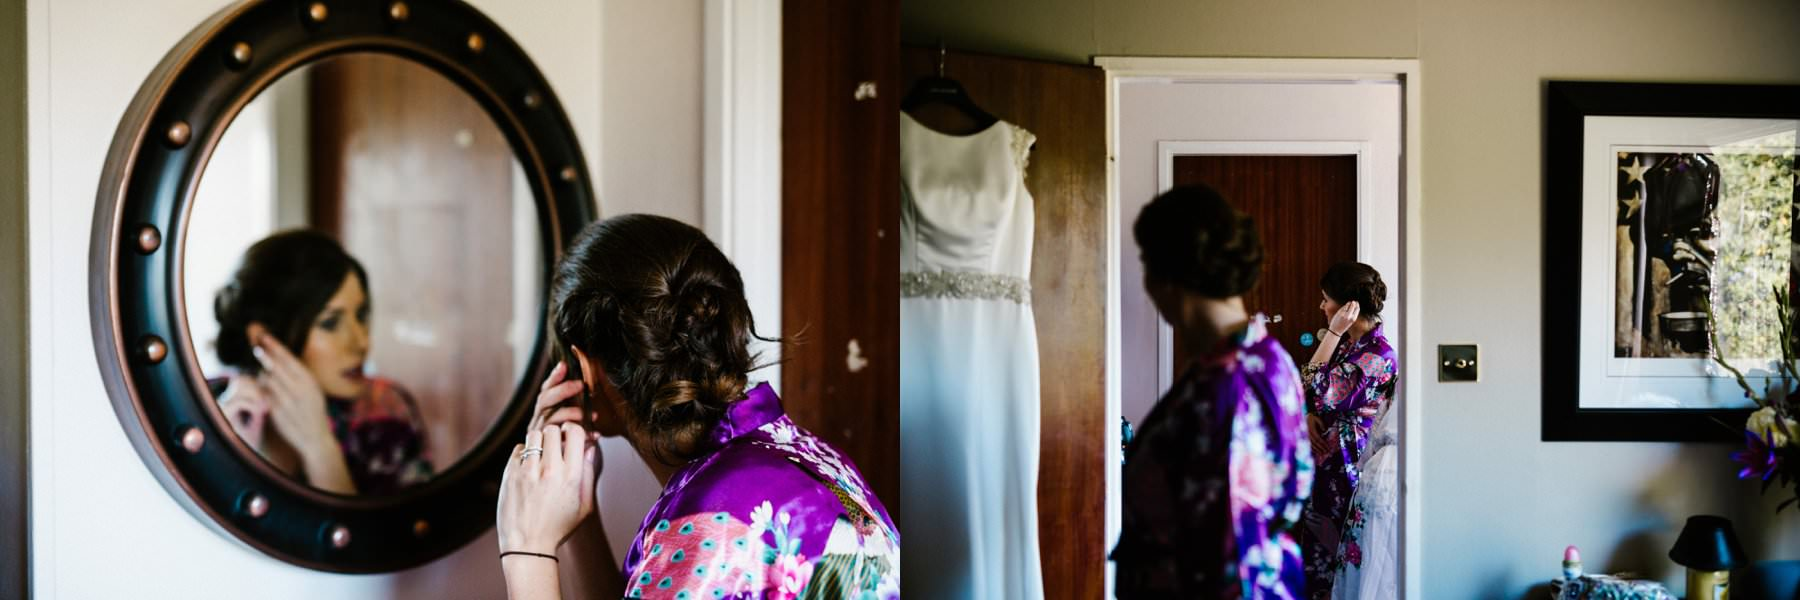 bridesmaids fix their hair wearing purple kimonos